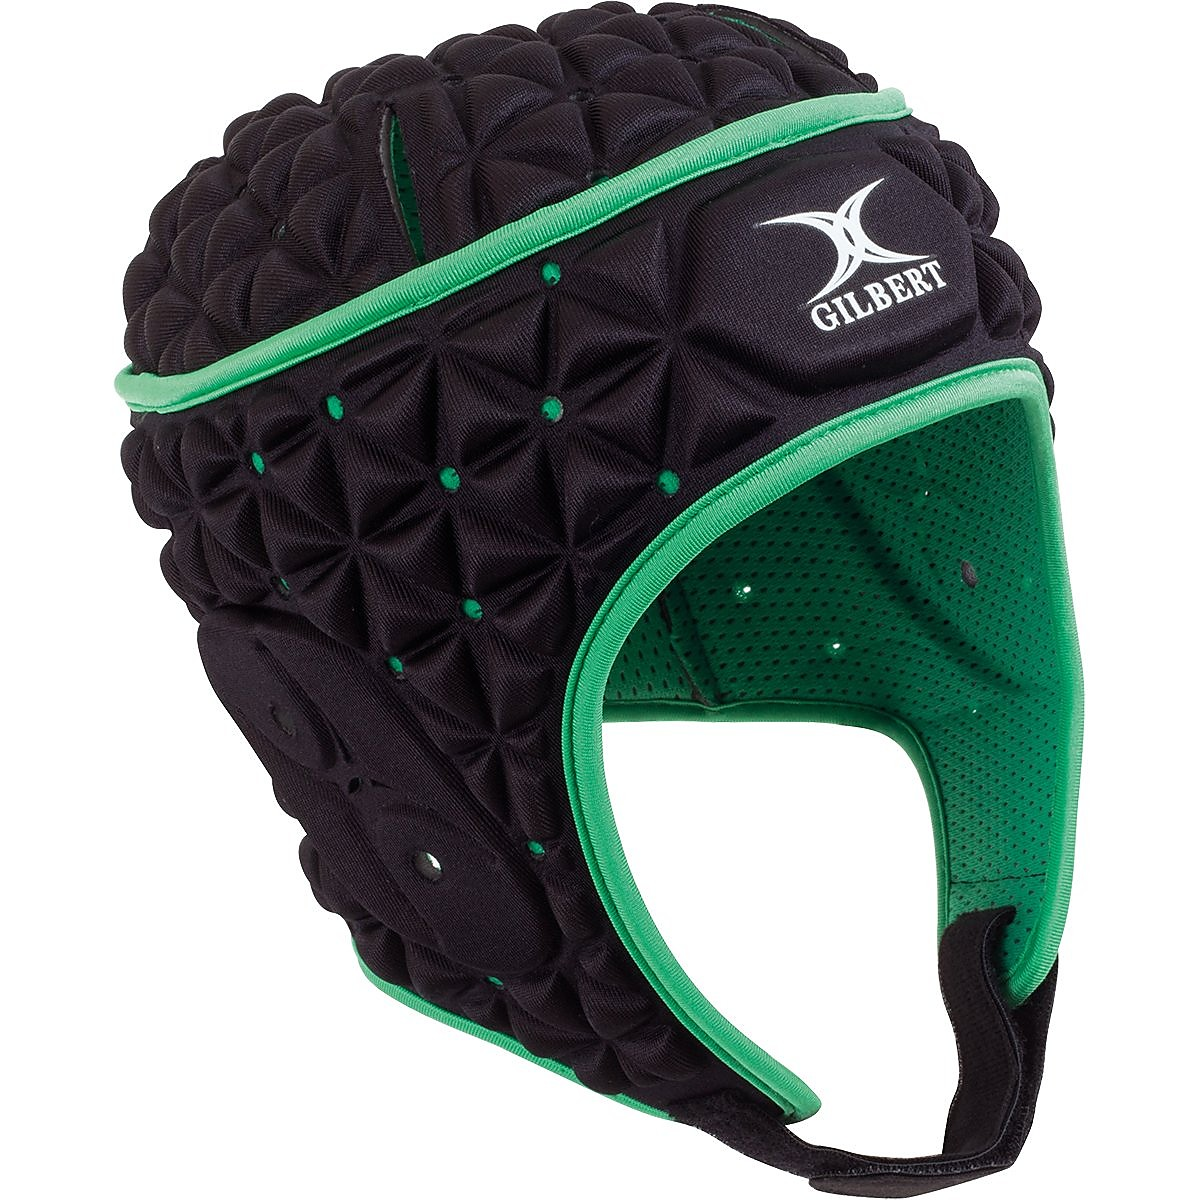 Gilbert Ignite Adult Headguard